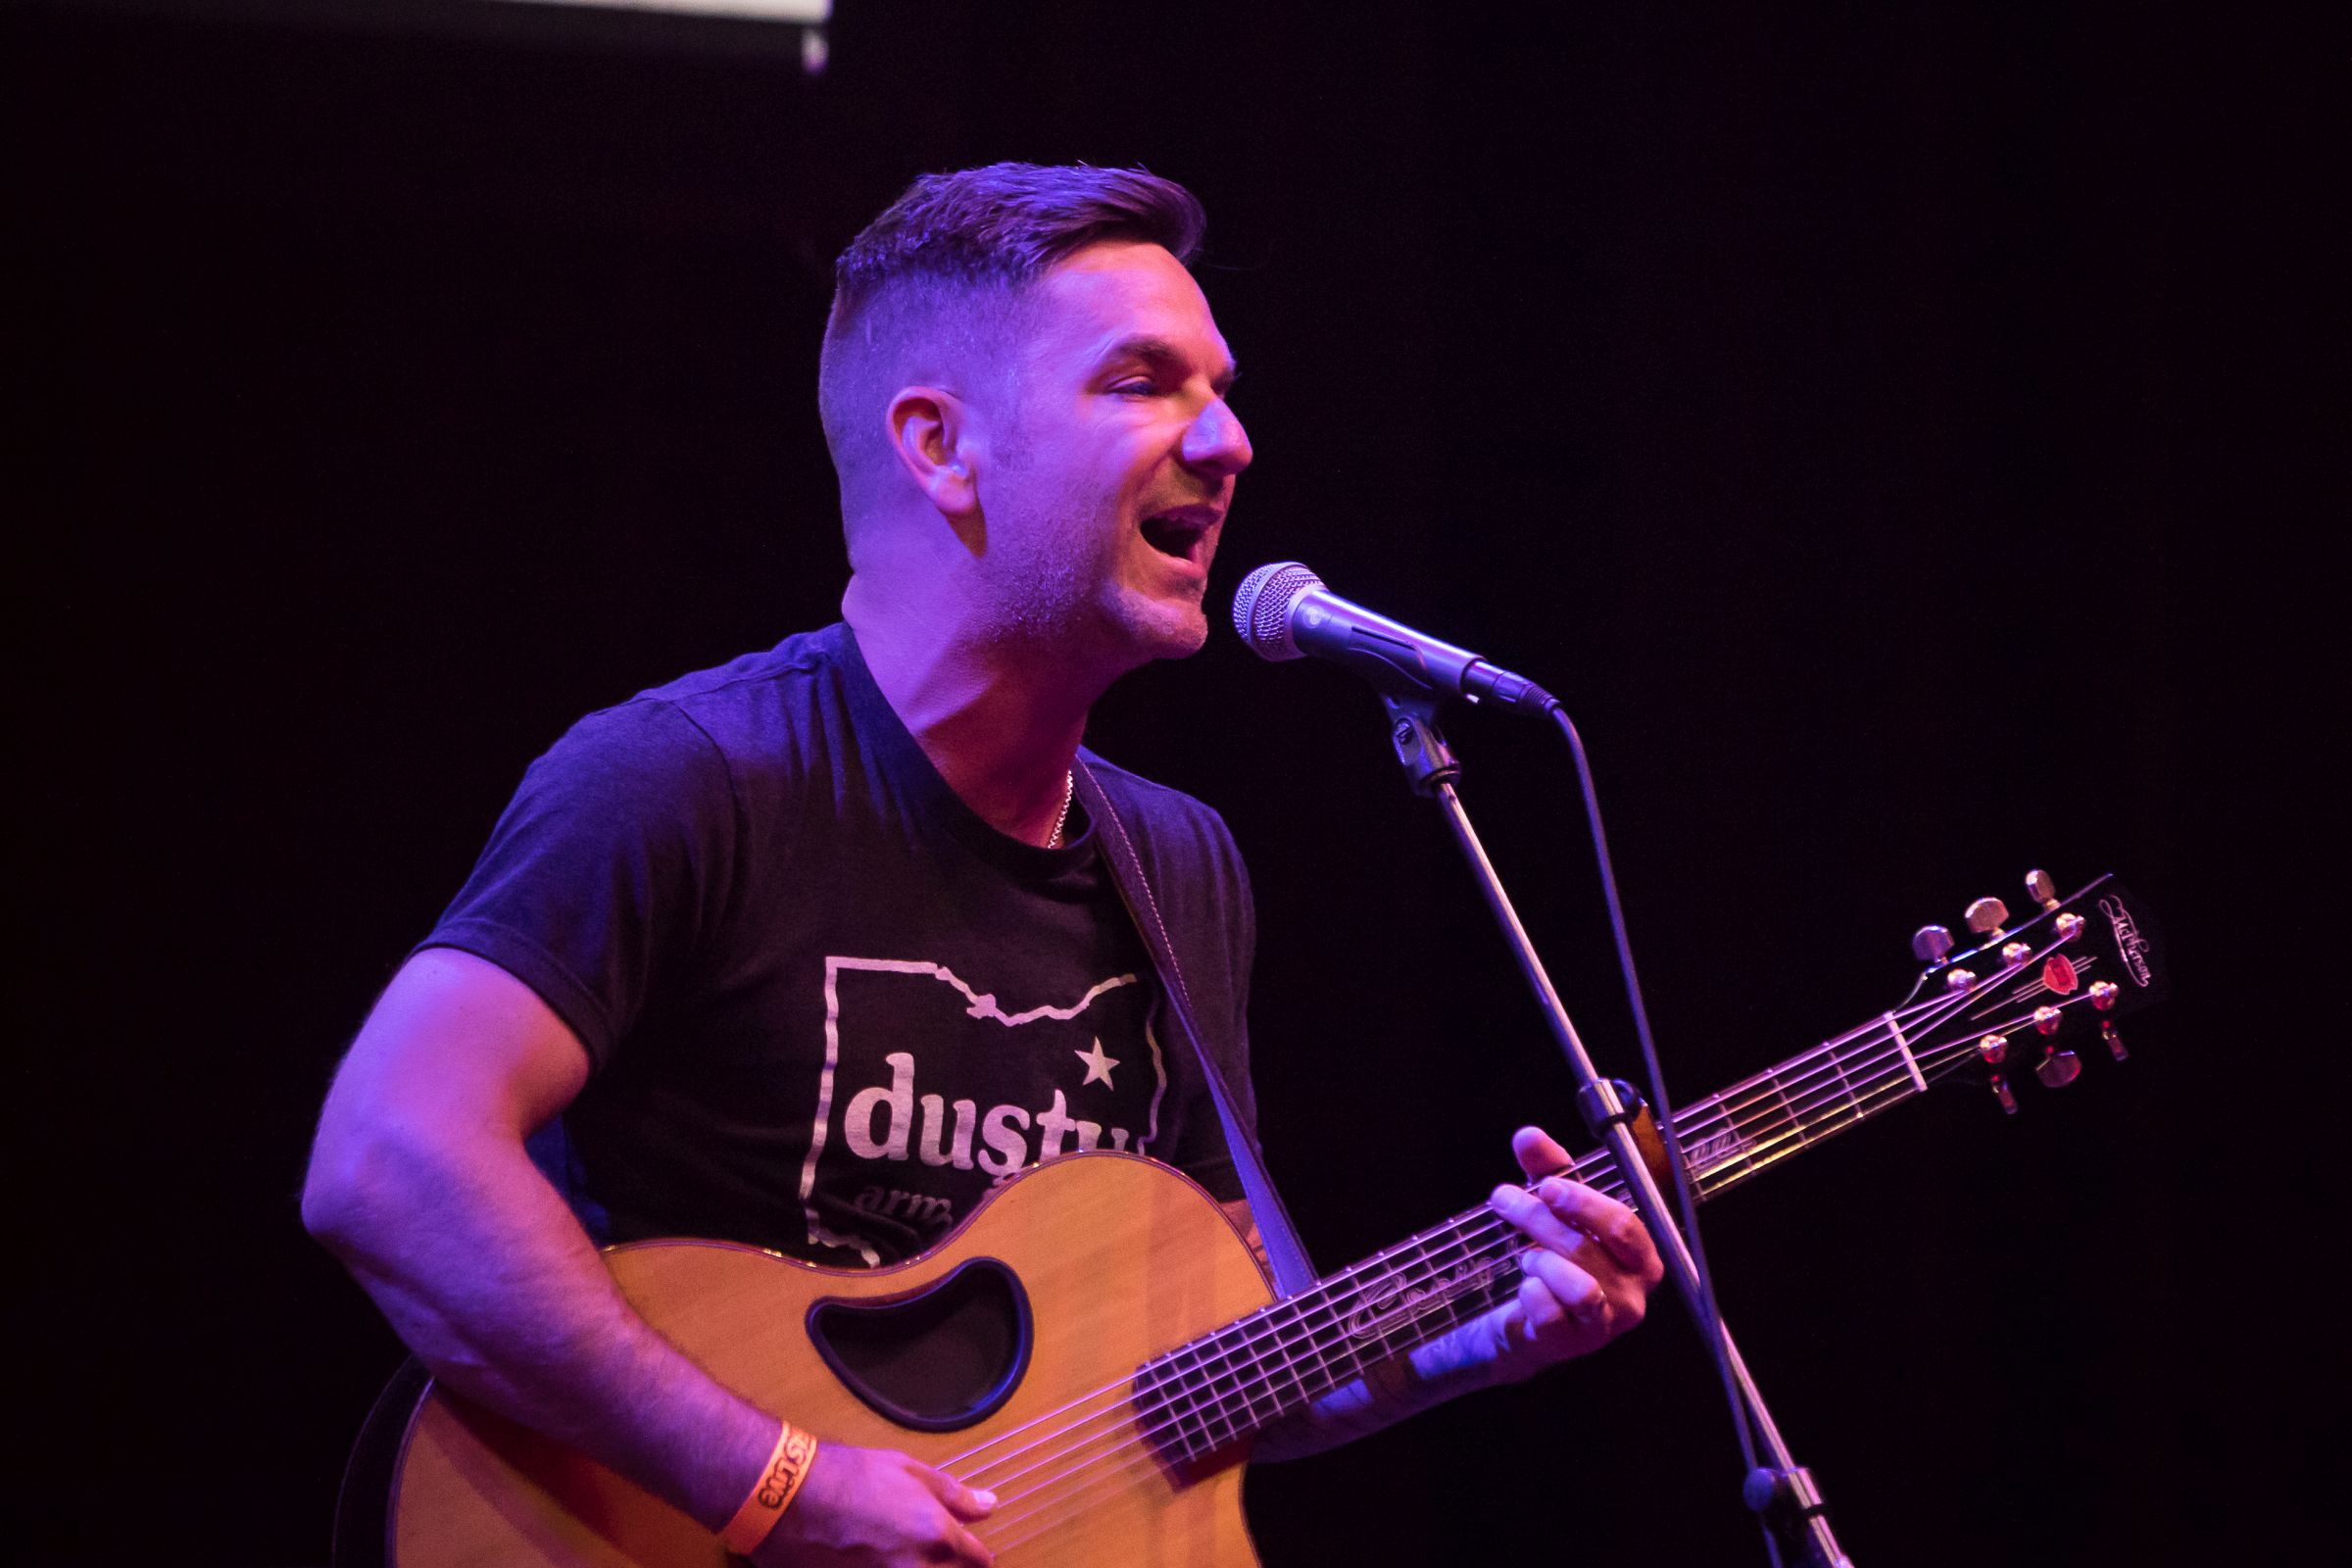 Craig Campbell performs at Introducing Nashville during C2C Amsterdam on Monday, March 4, 2019.